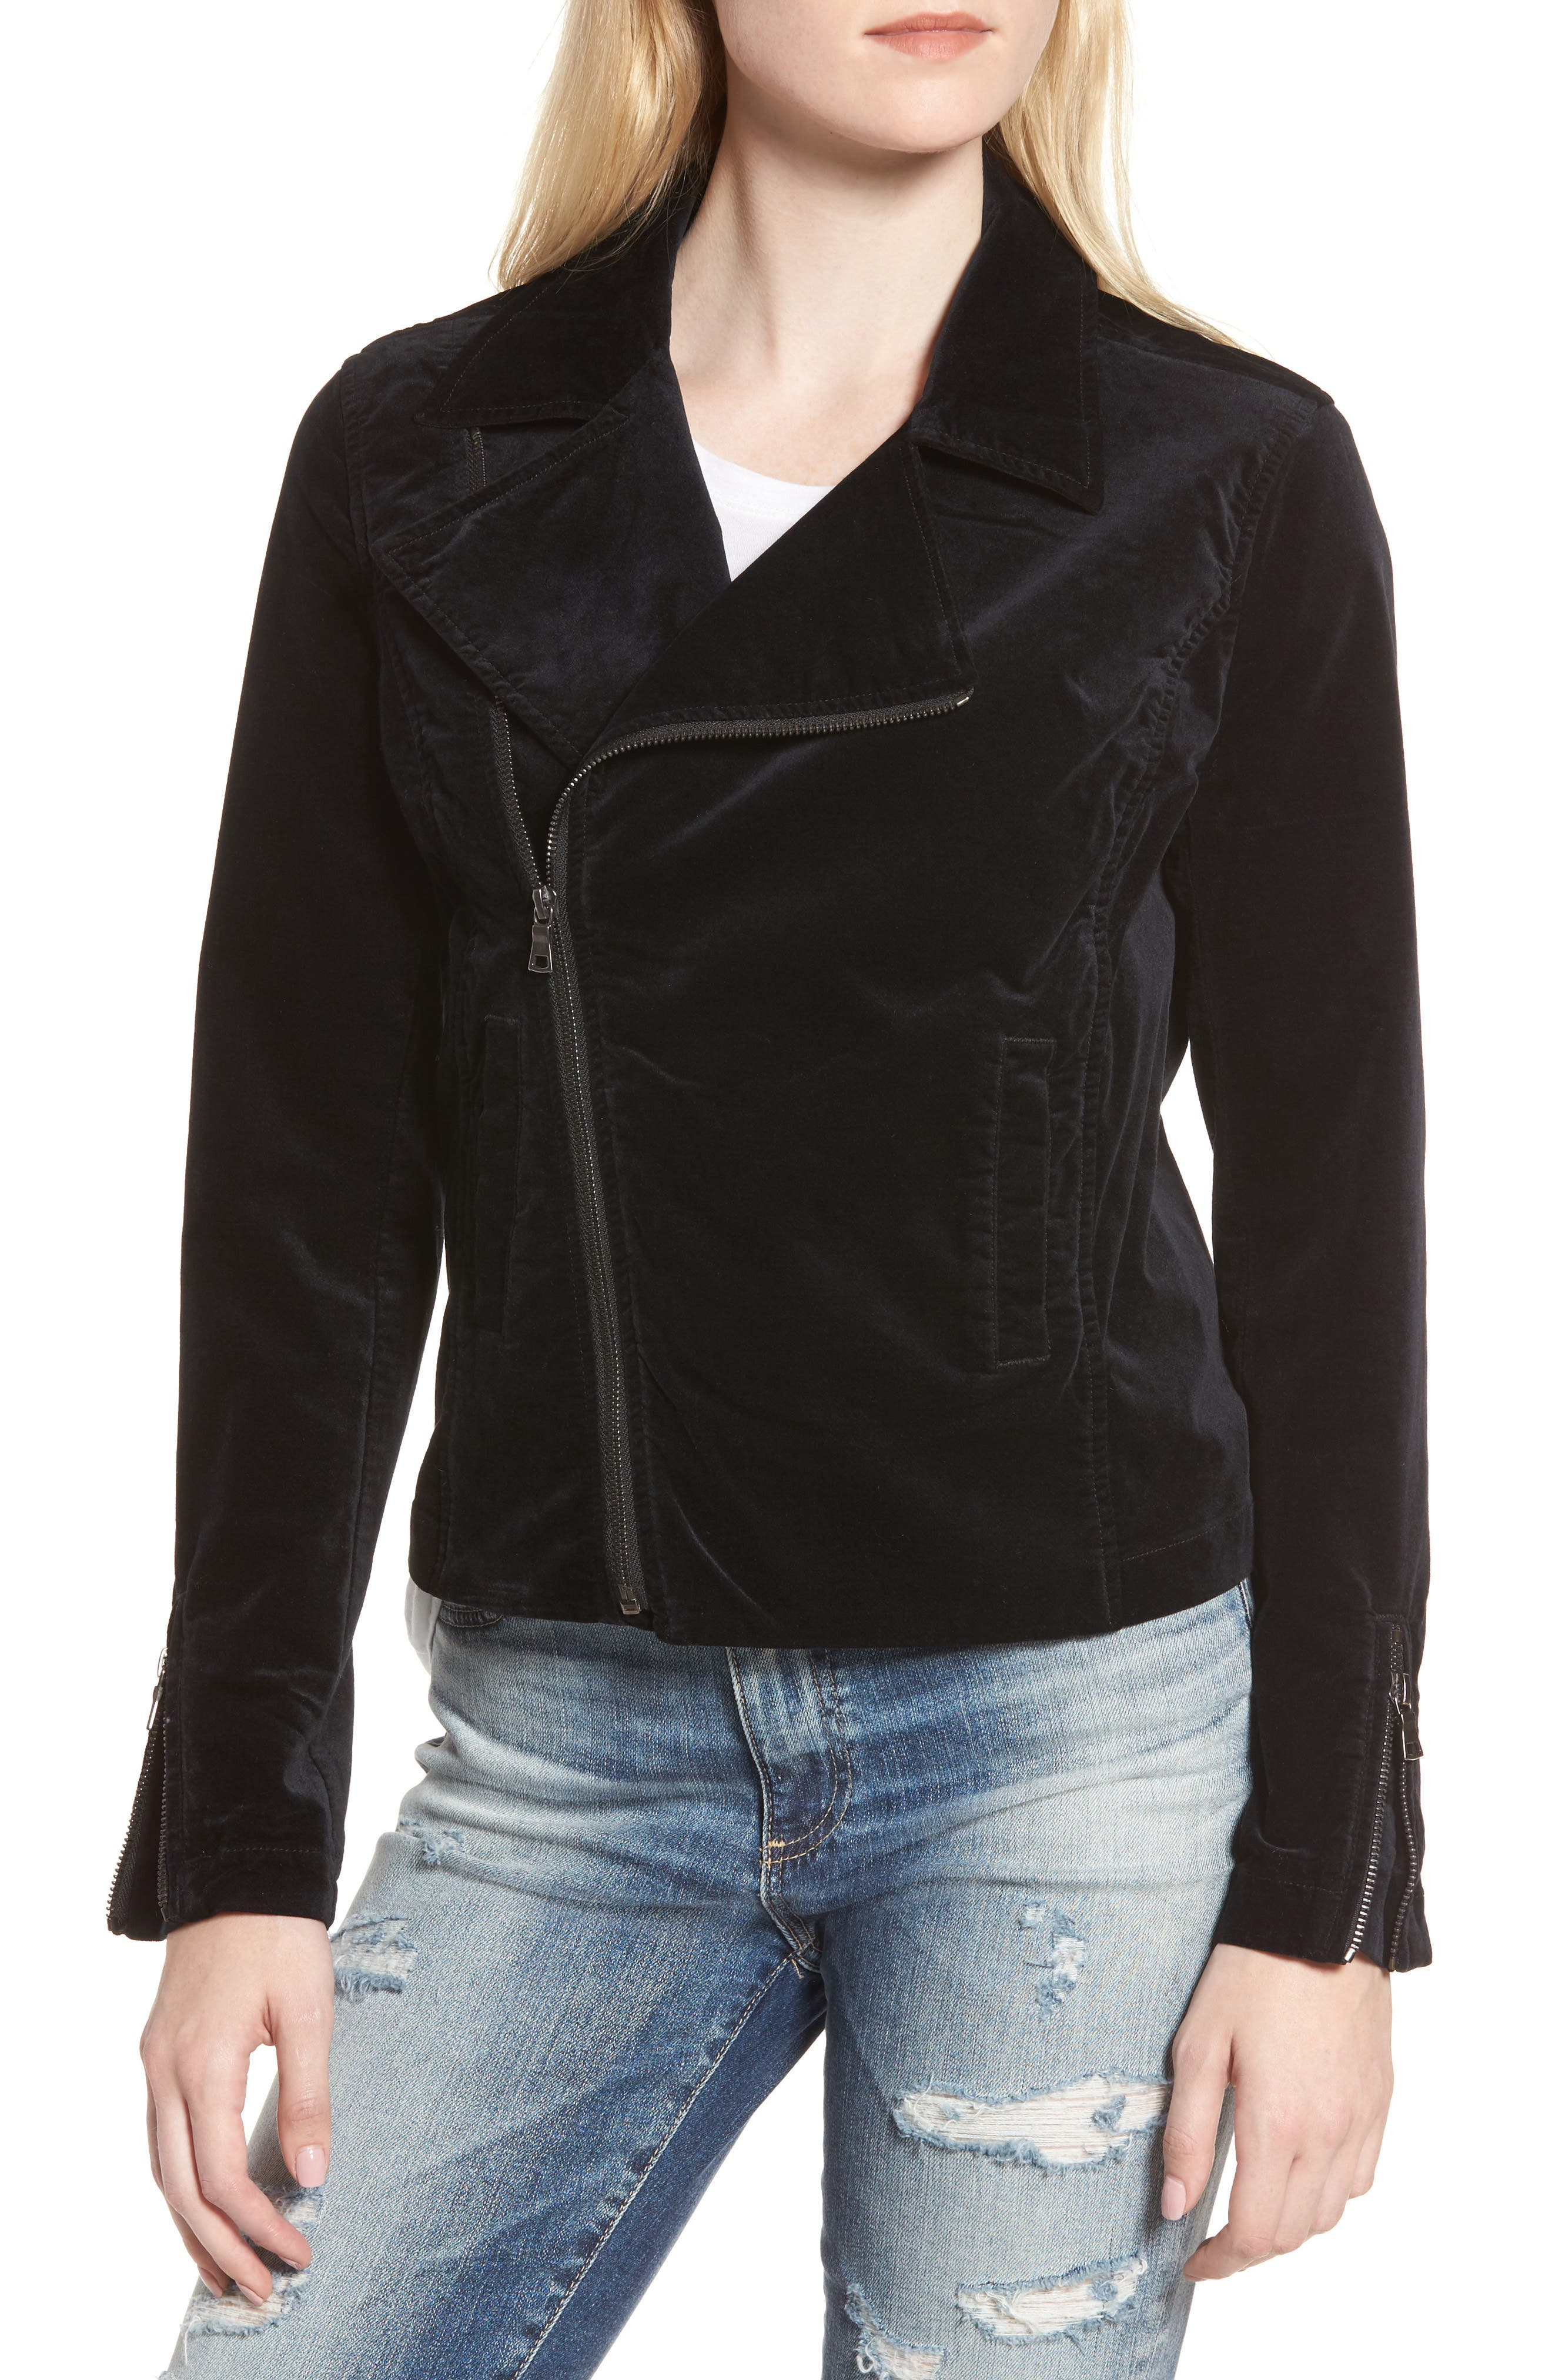 Quincy Velvet Biker Jacket,                             Alternate thumbnail 4, color,                             001